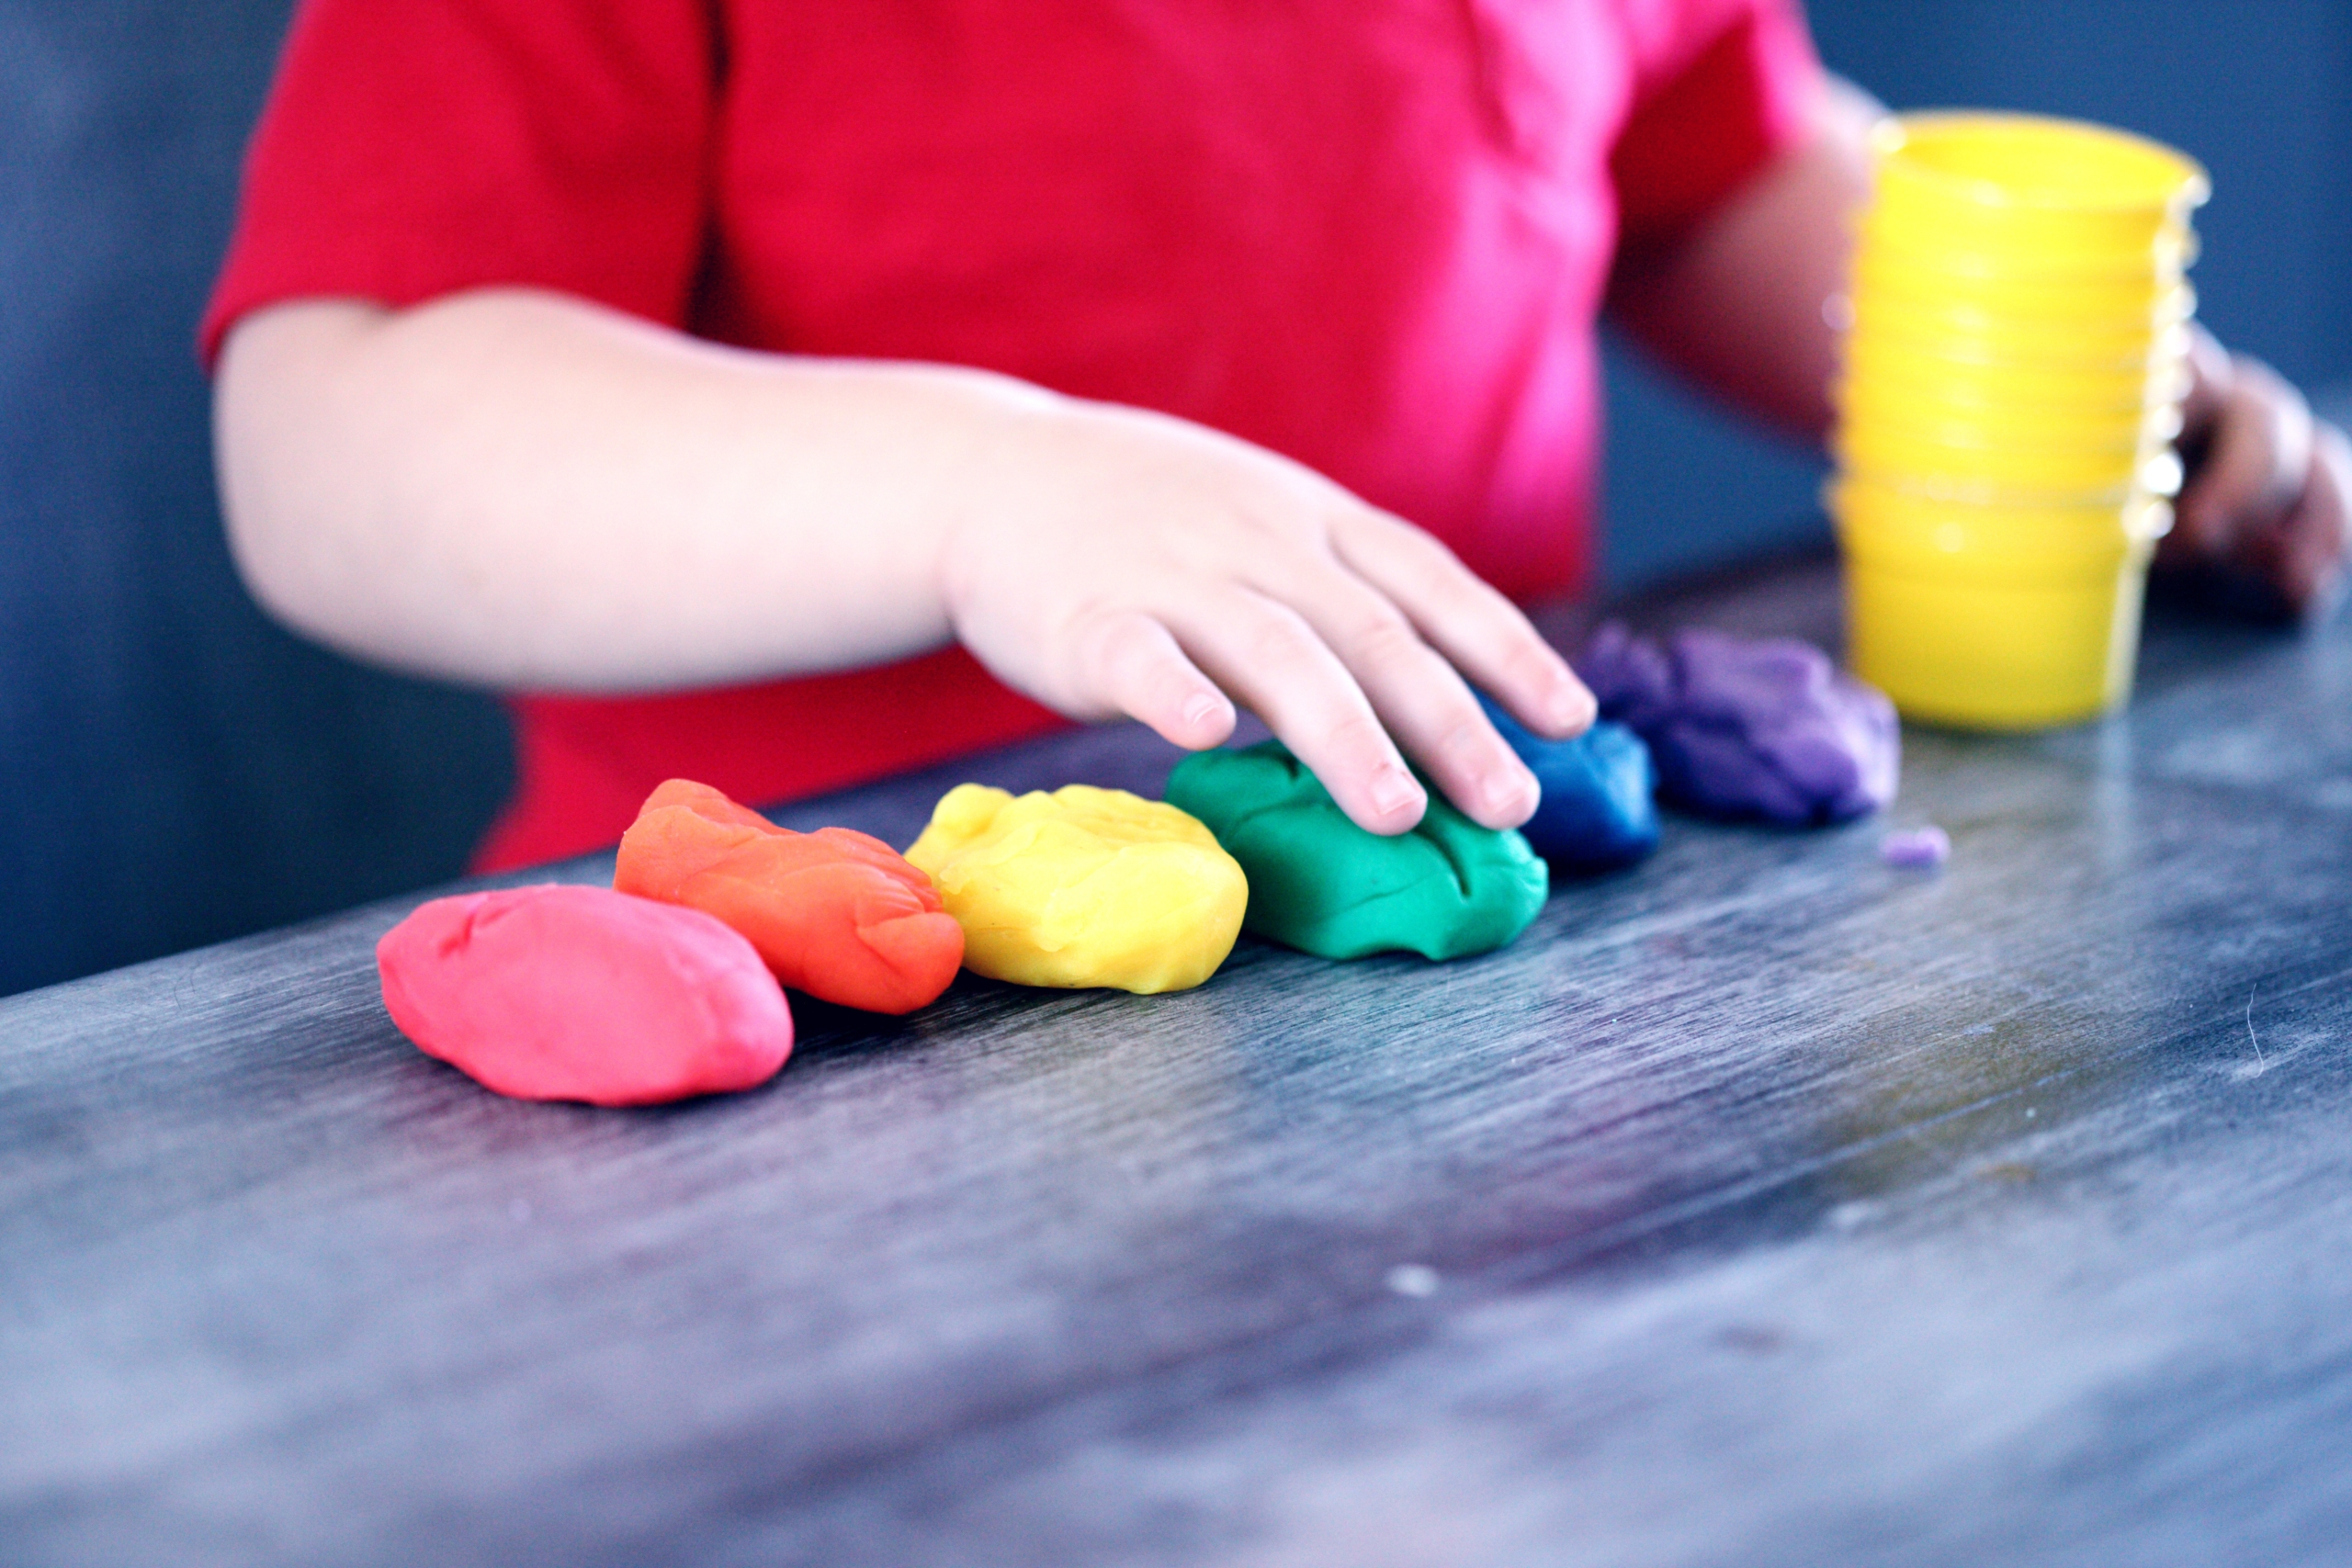 Playing with Playdoh